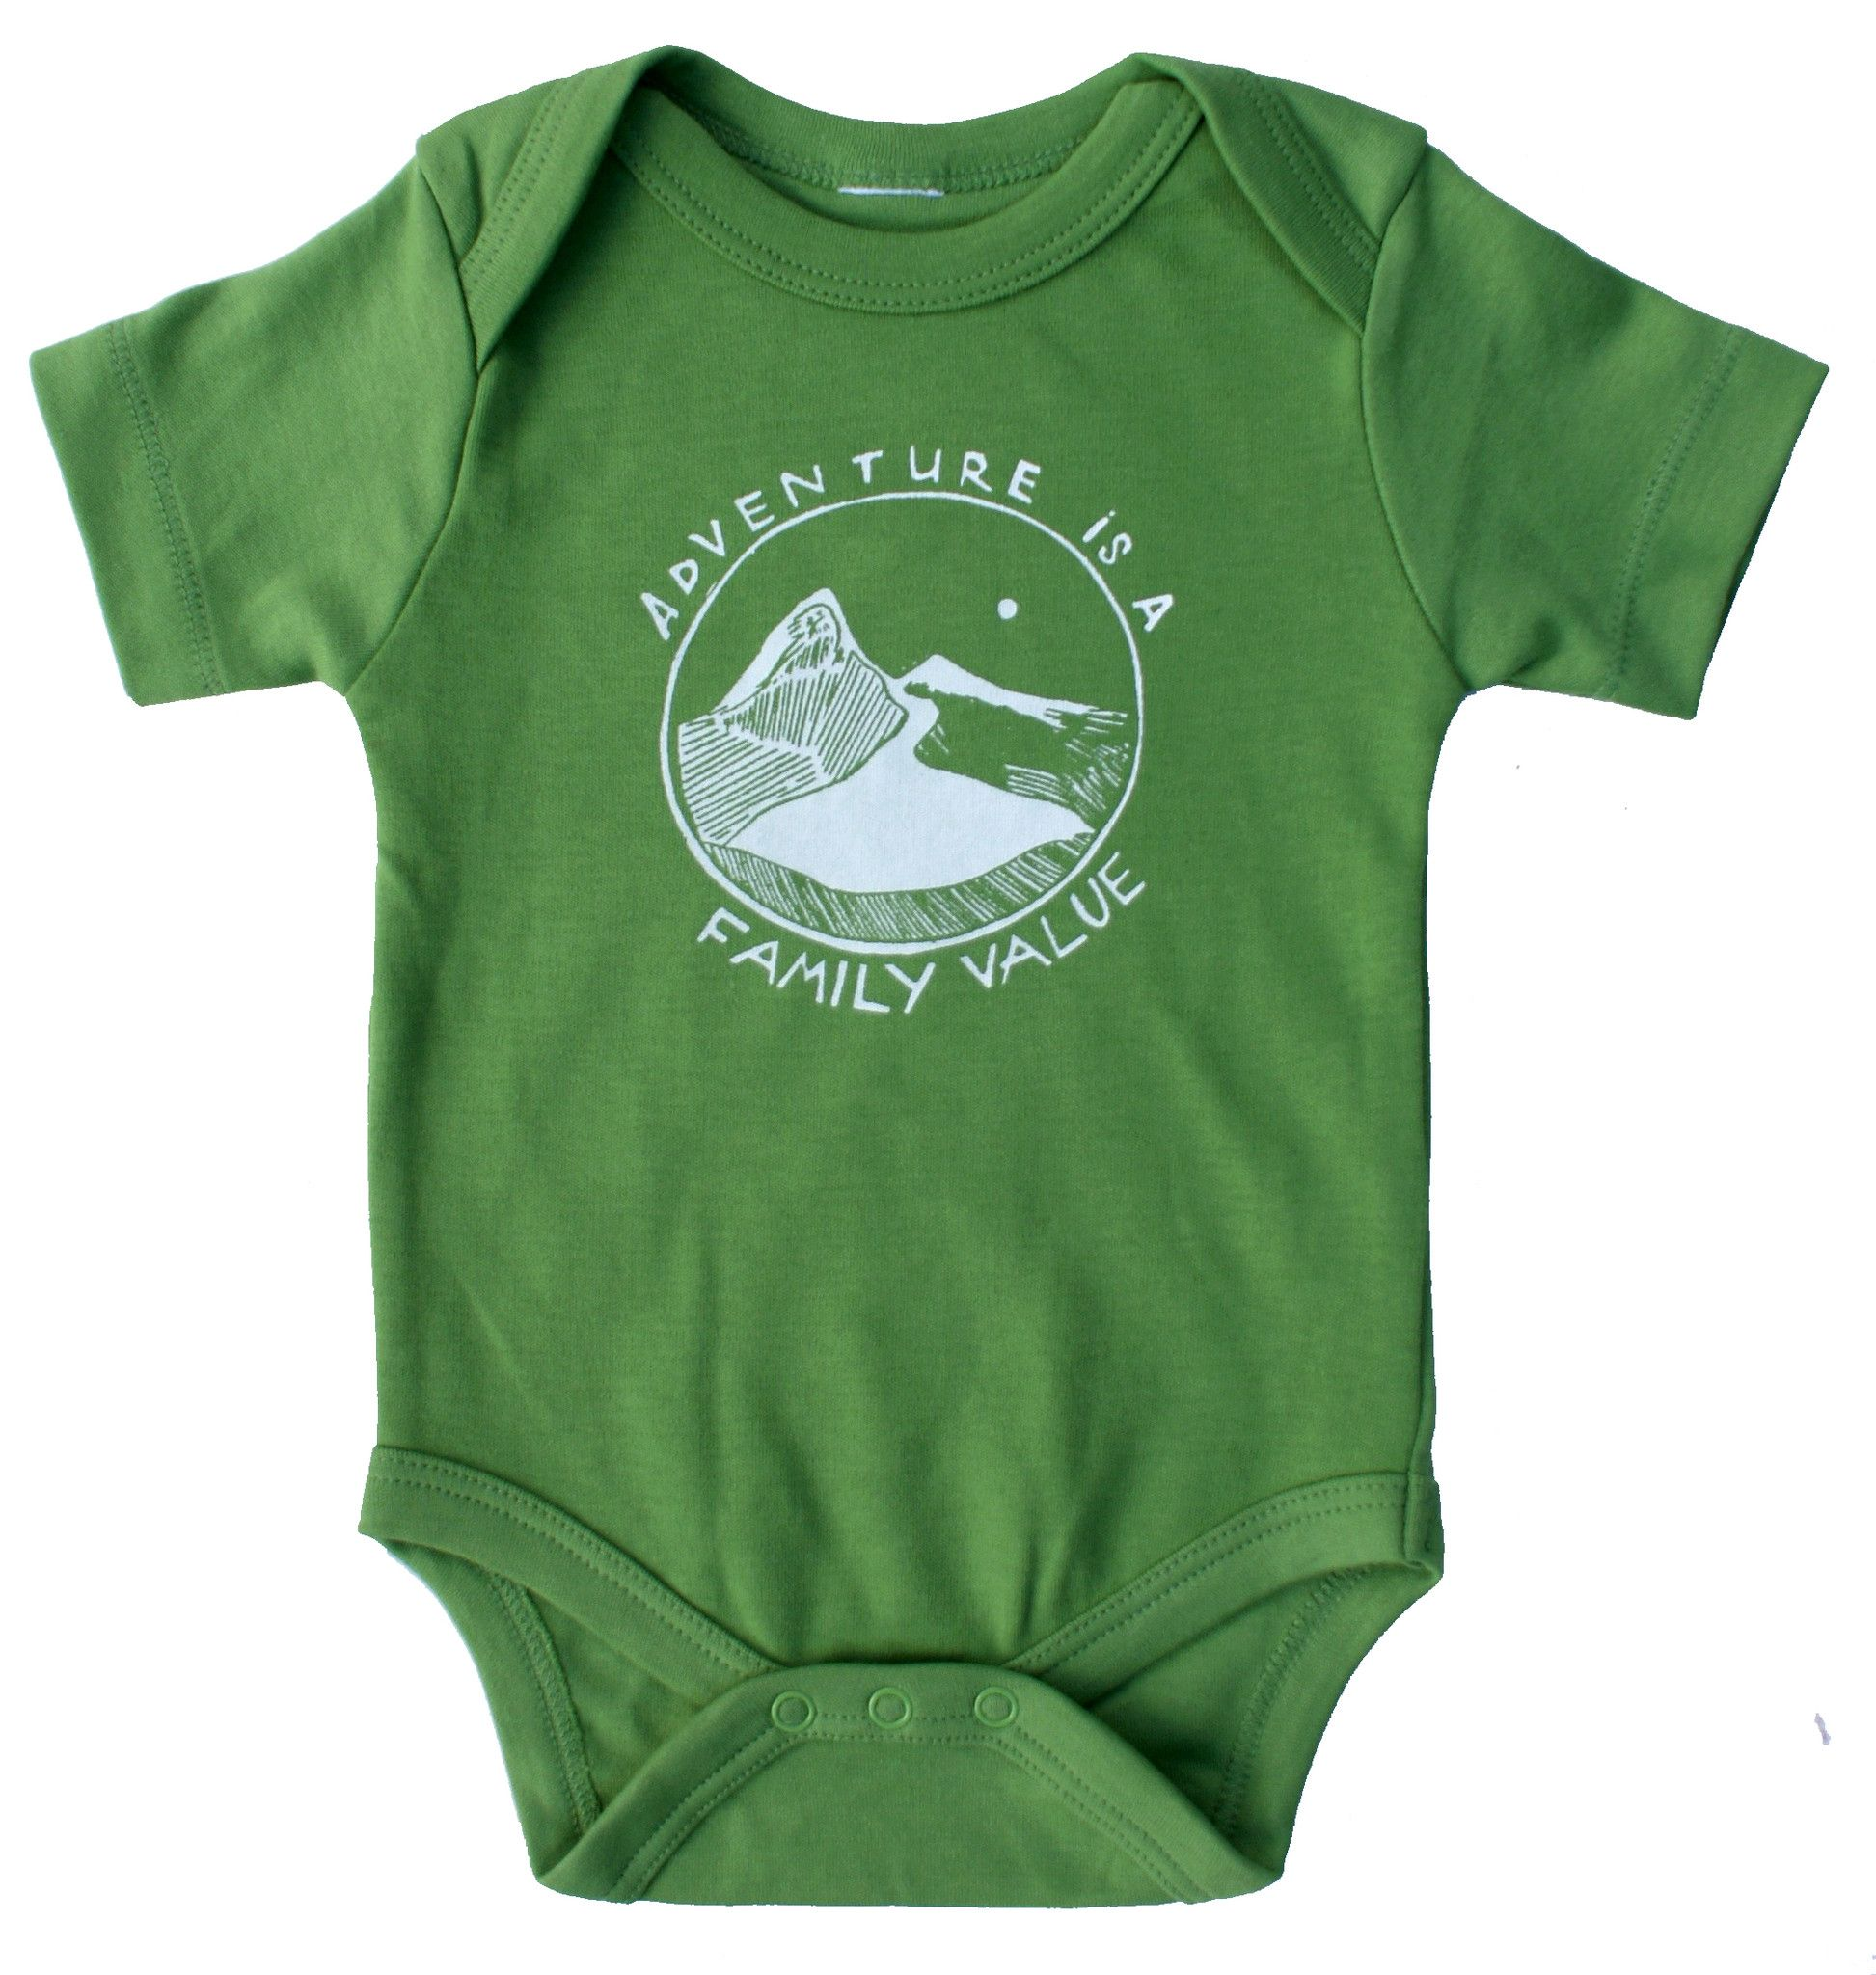 Adventure Is A Family Value Organic Cotton One Piece In Grass